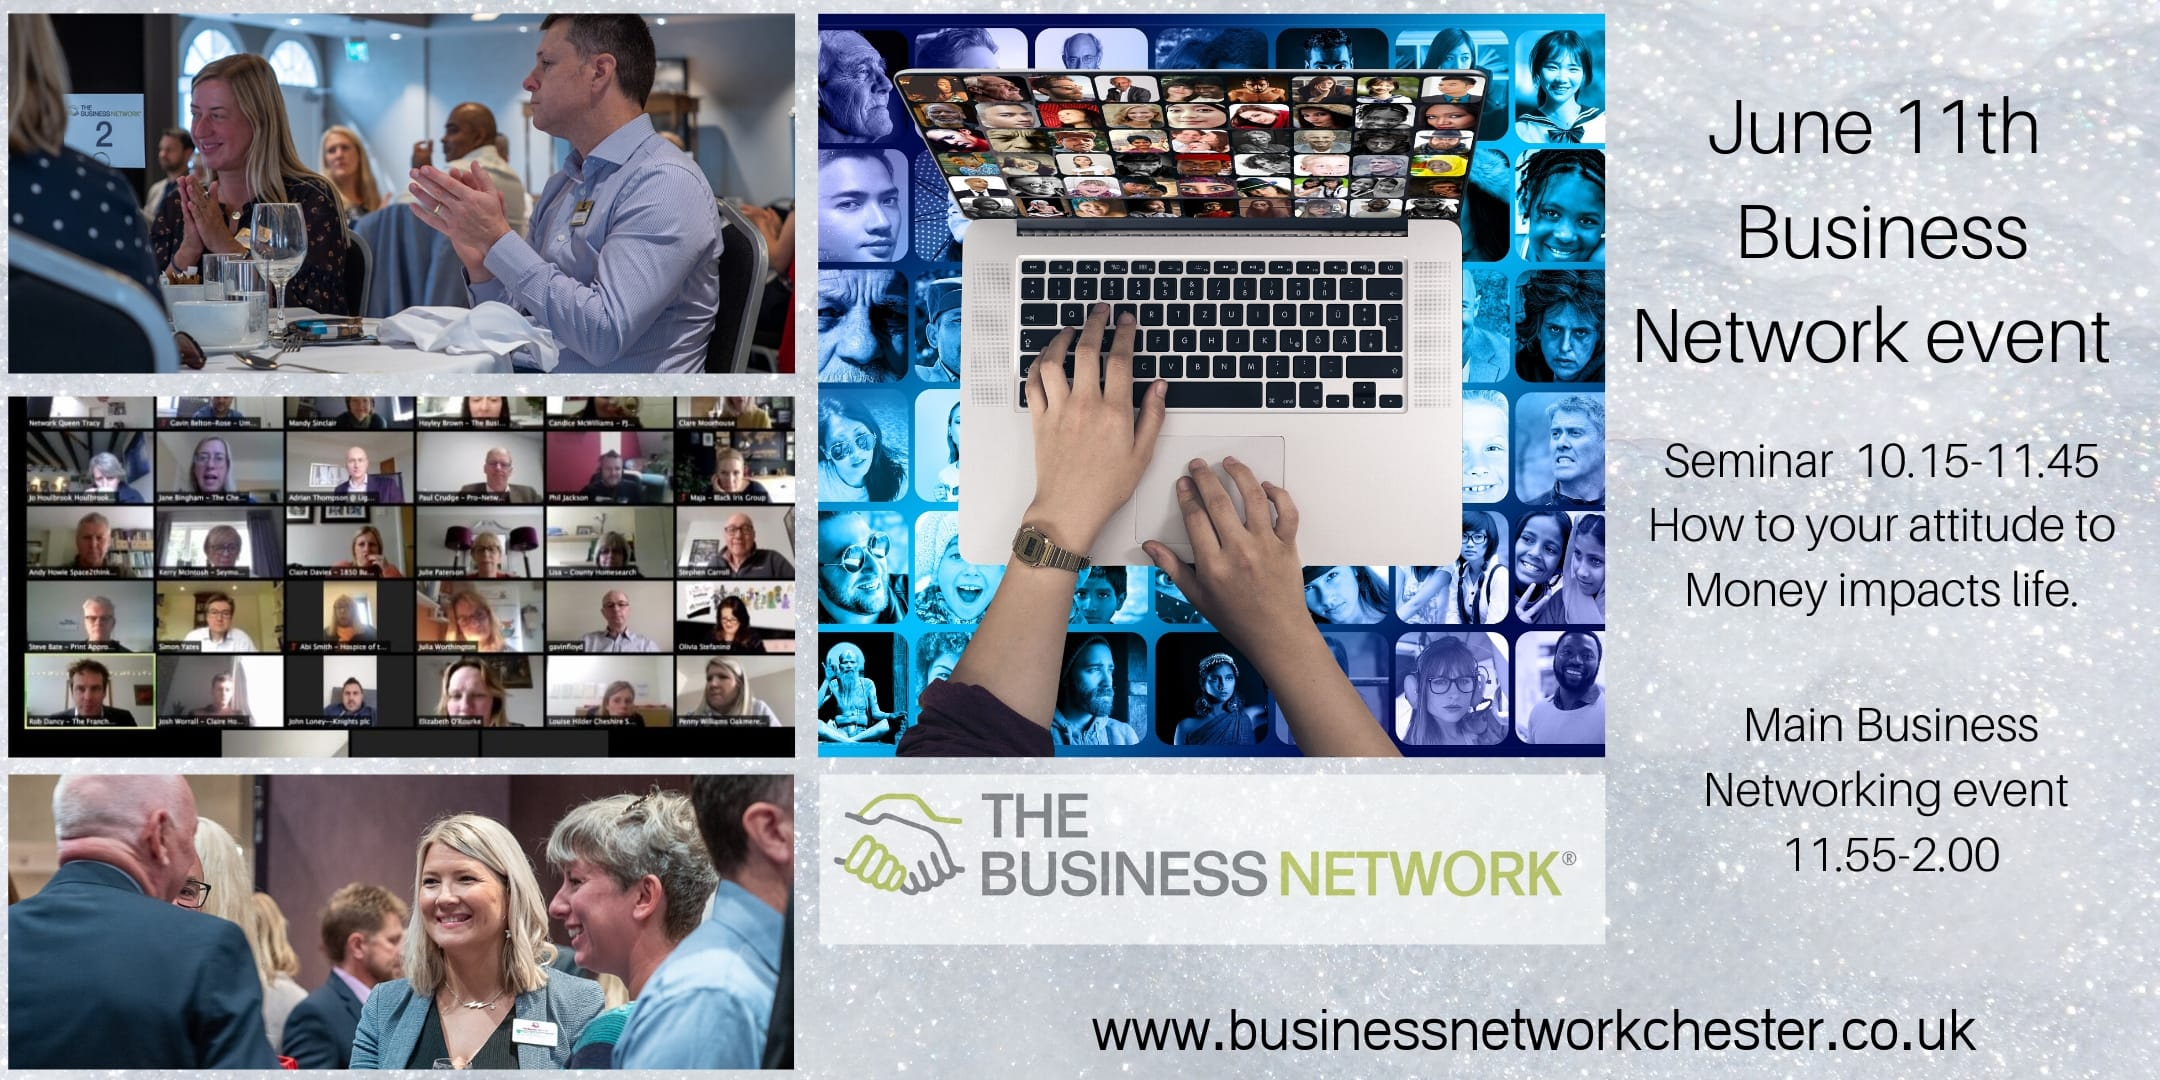 Quality Business networking event